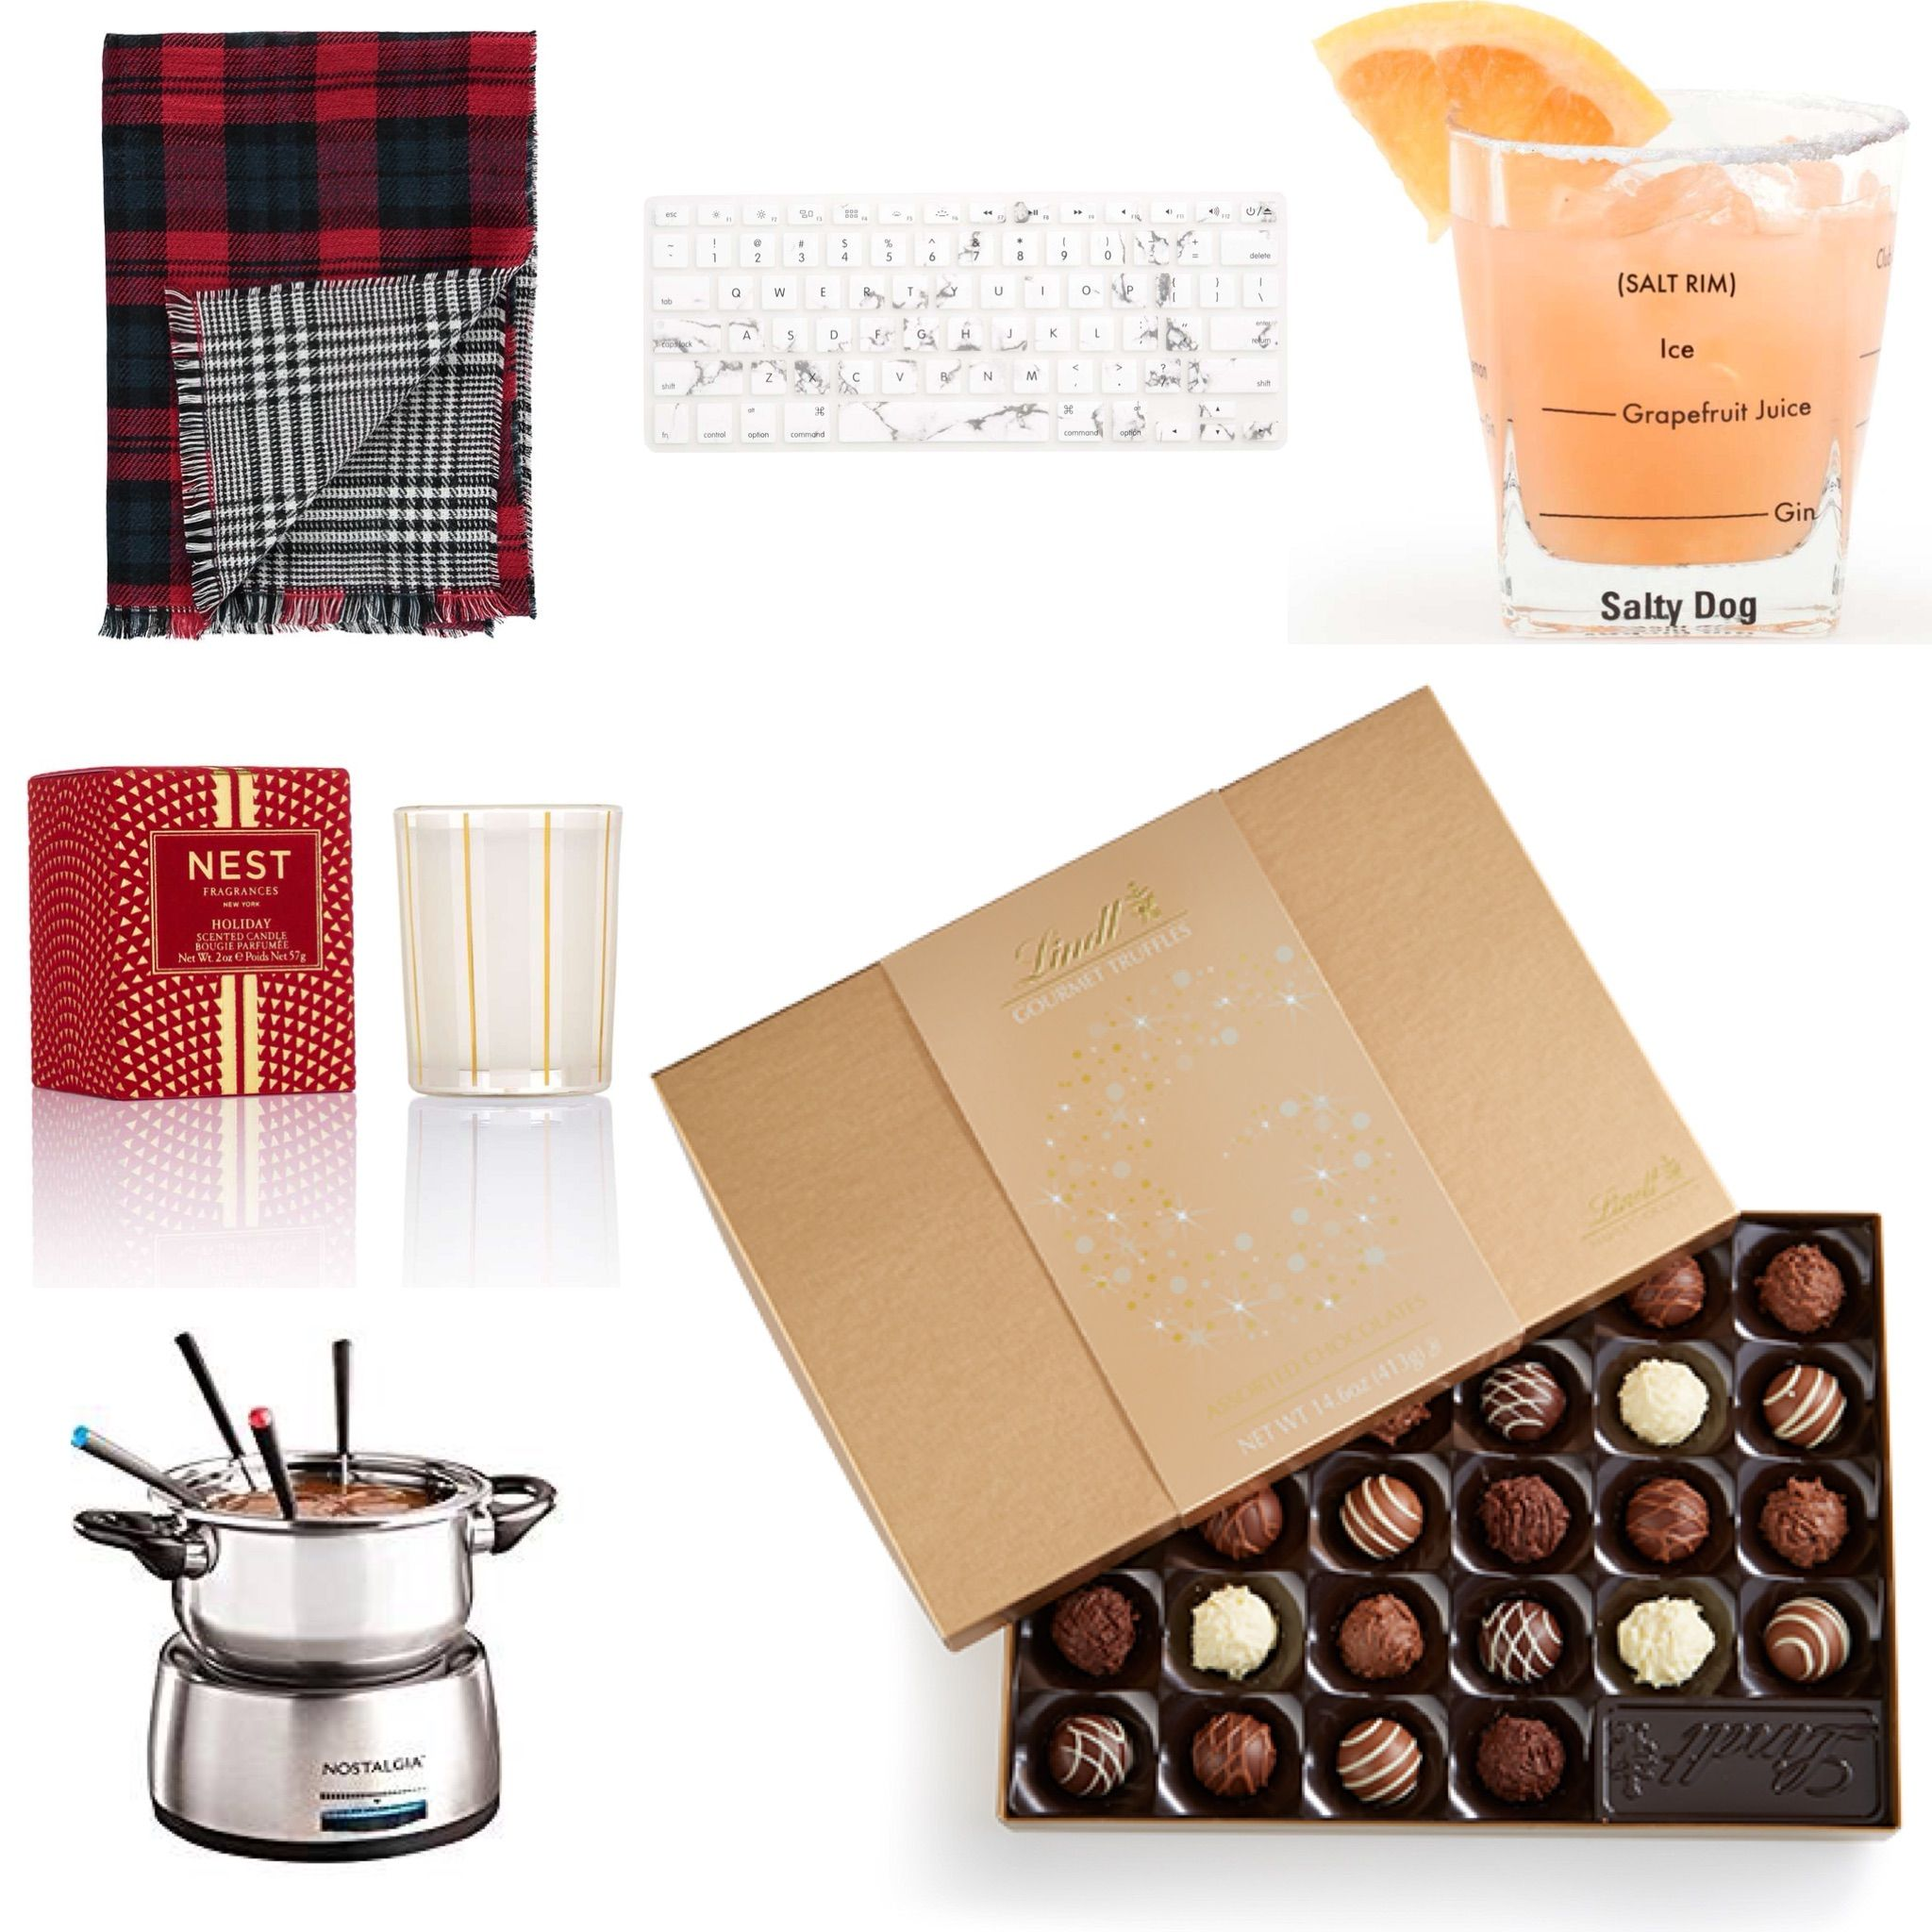 25 Gift Ideas Under $25! (With images) | 25th gifts, Gifts ...